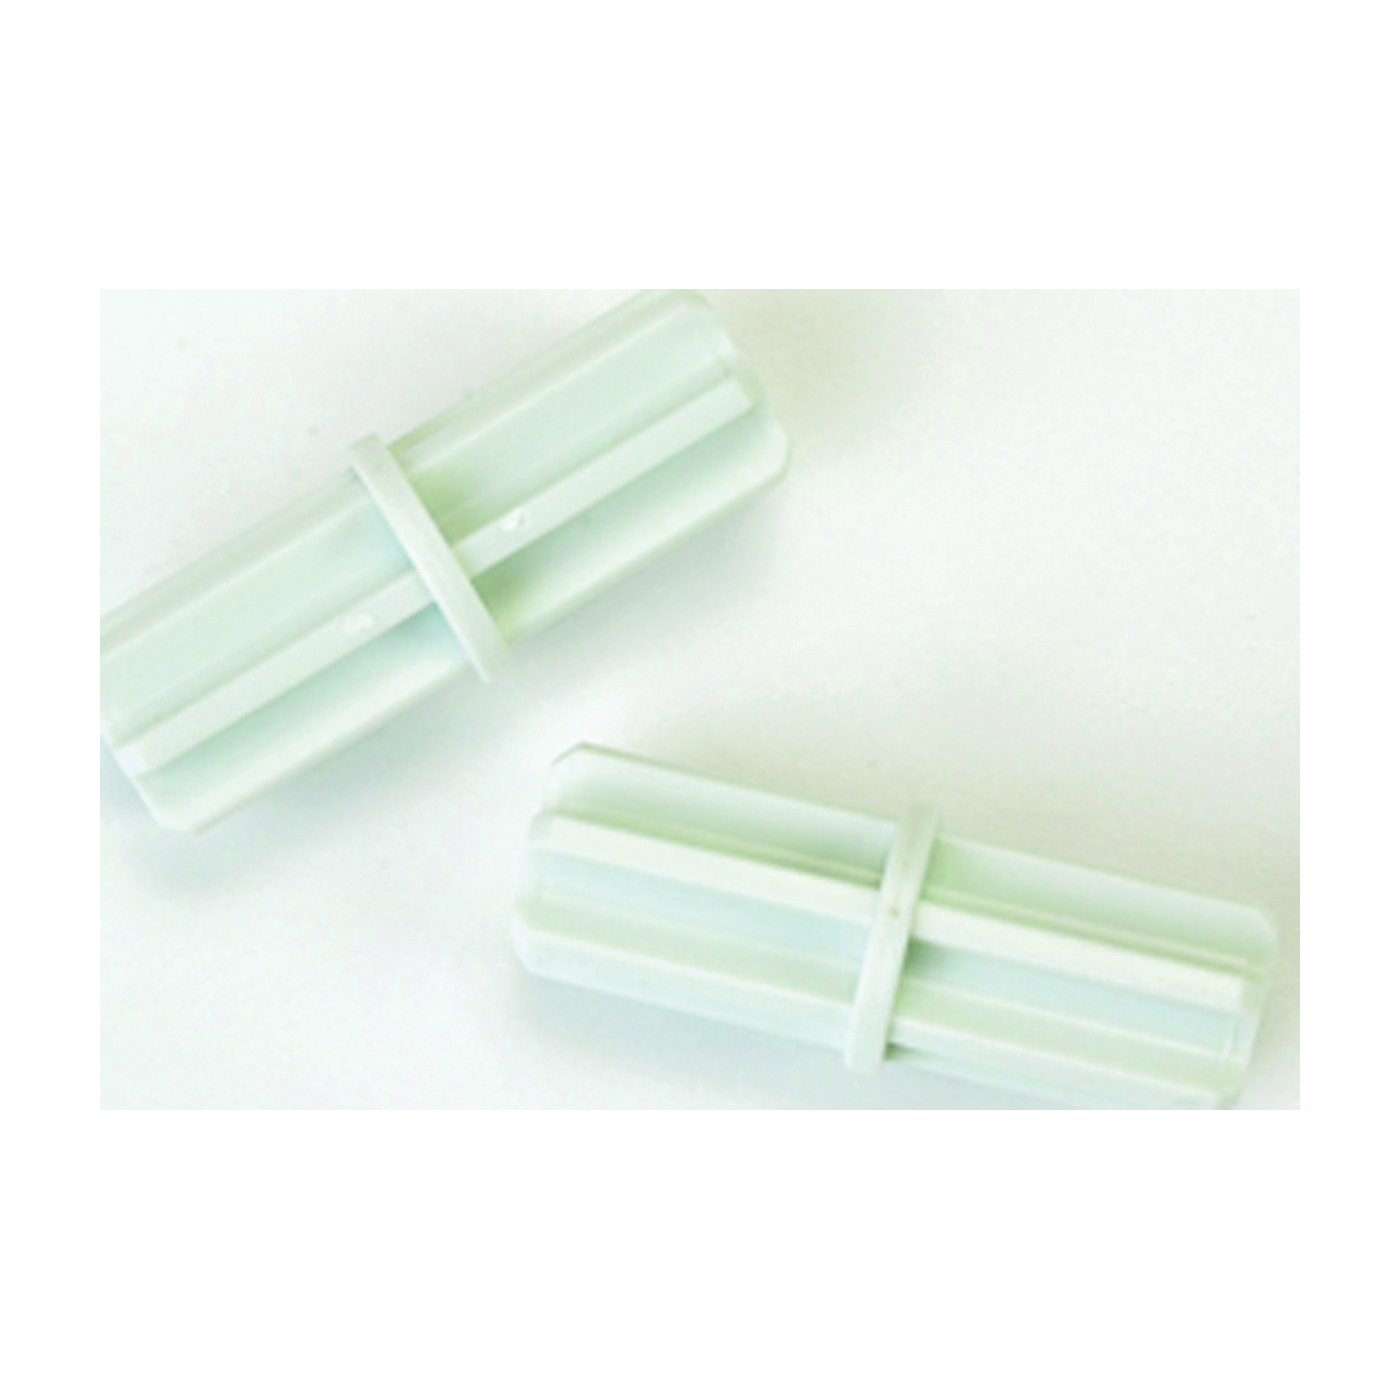 Picture of ClosetMaid 75651 Rod Connector, Plastic, White, 2